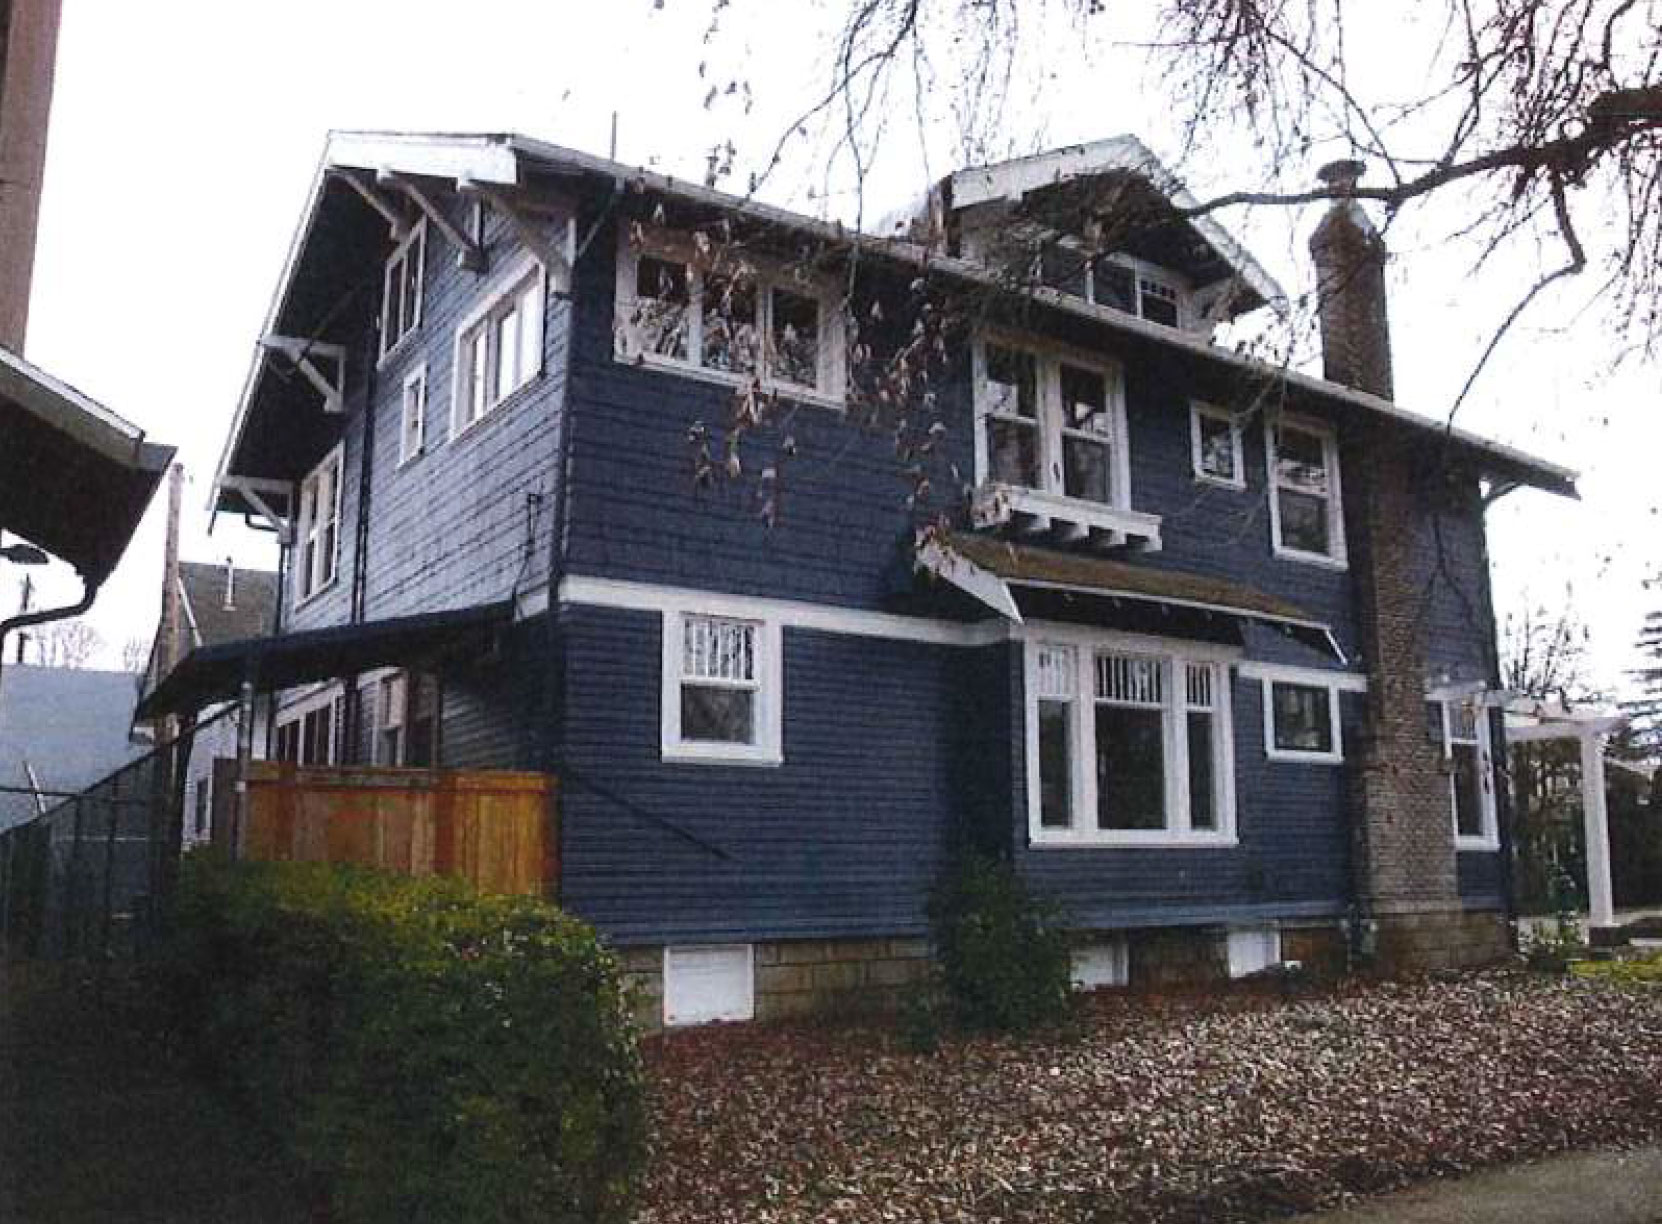 The Foster-Simmons House, 417 E 13th Ave. in Eugene, has been placed on the National Register of Historic Places as an intact example of Craftsman style home. (Photo from nomination)